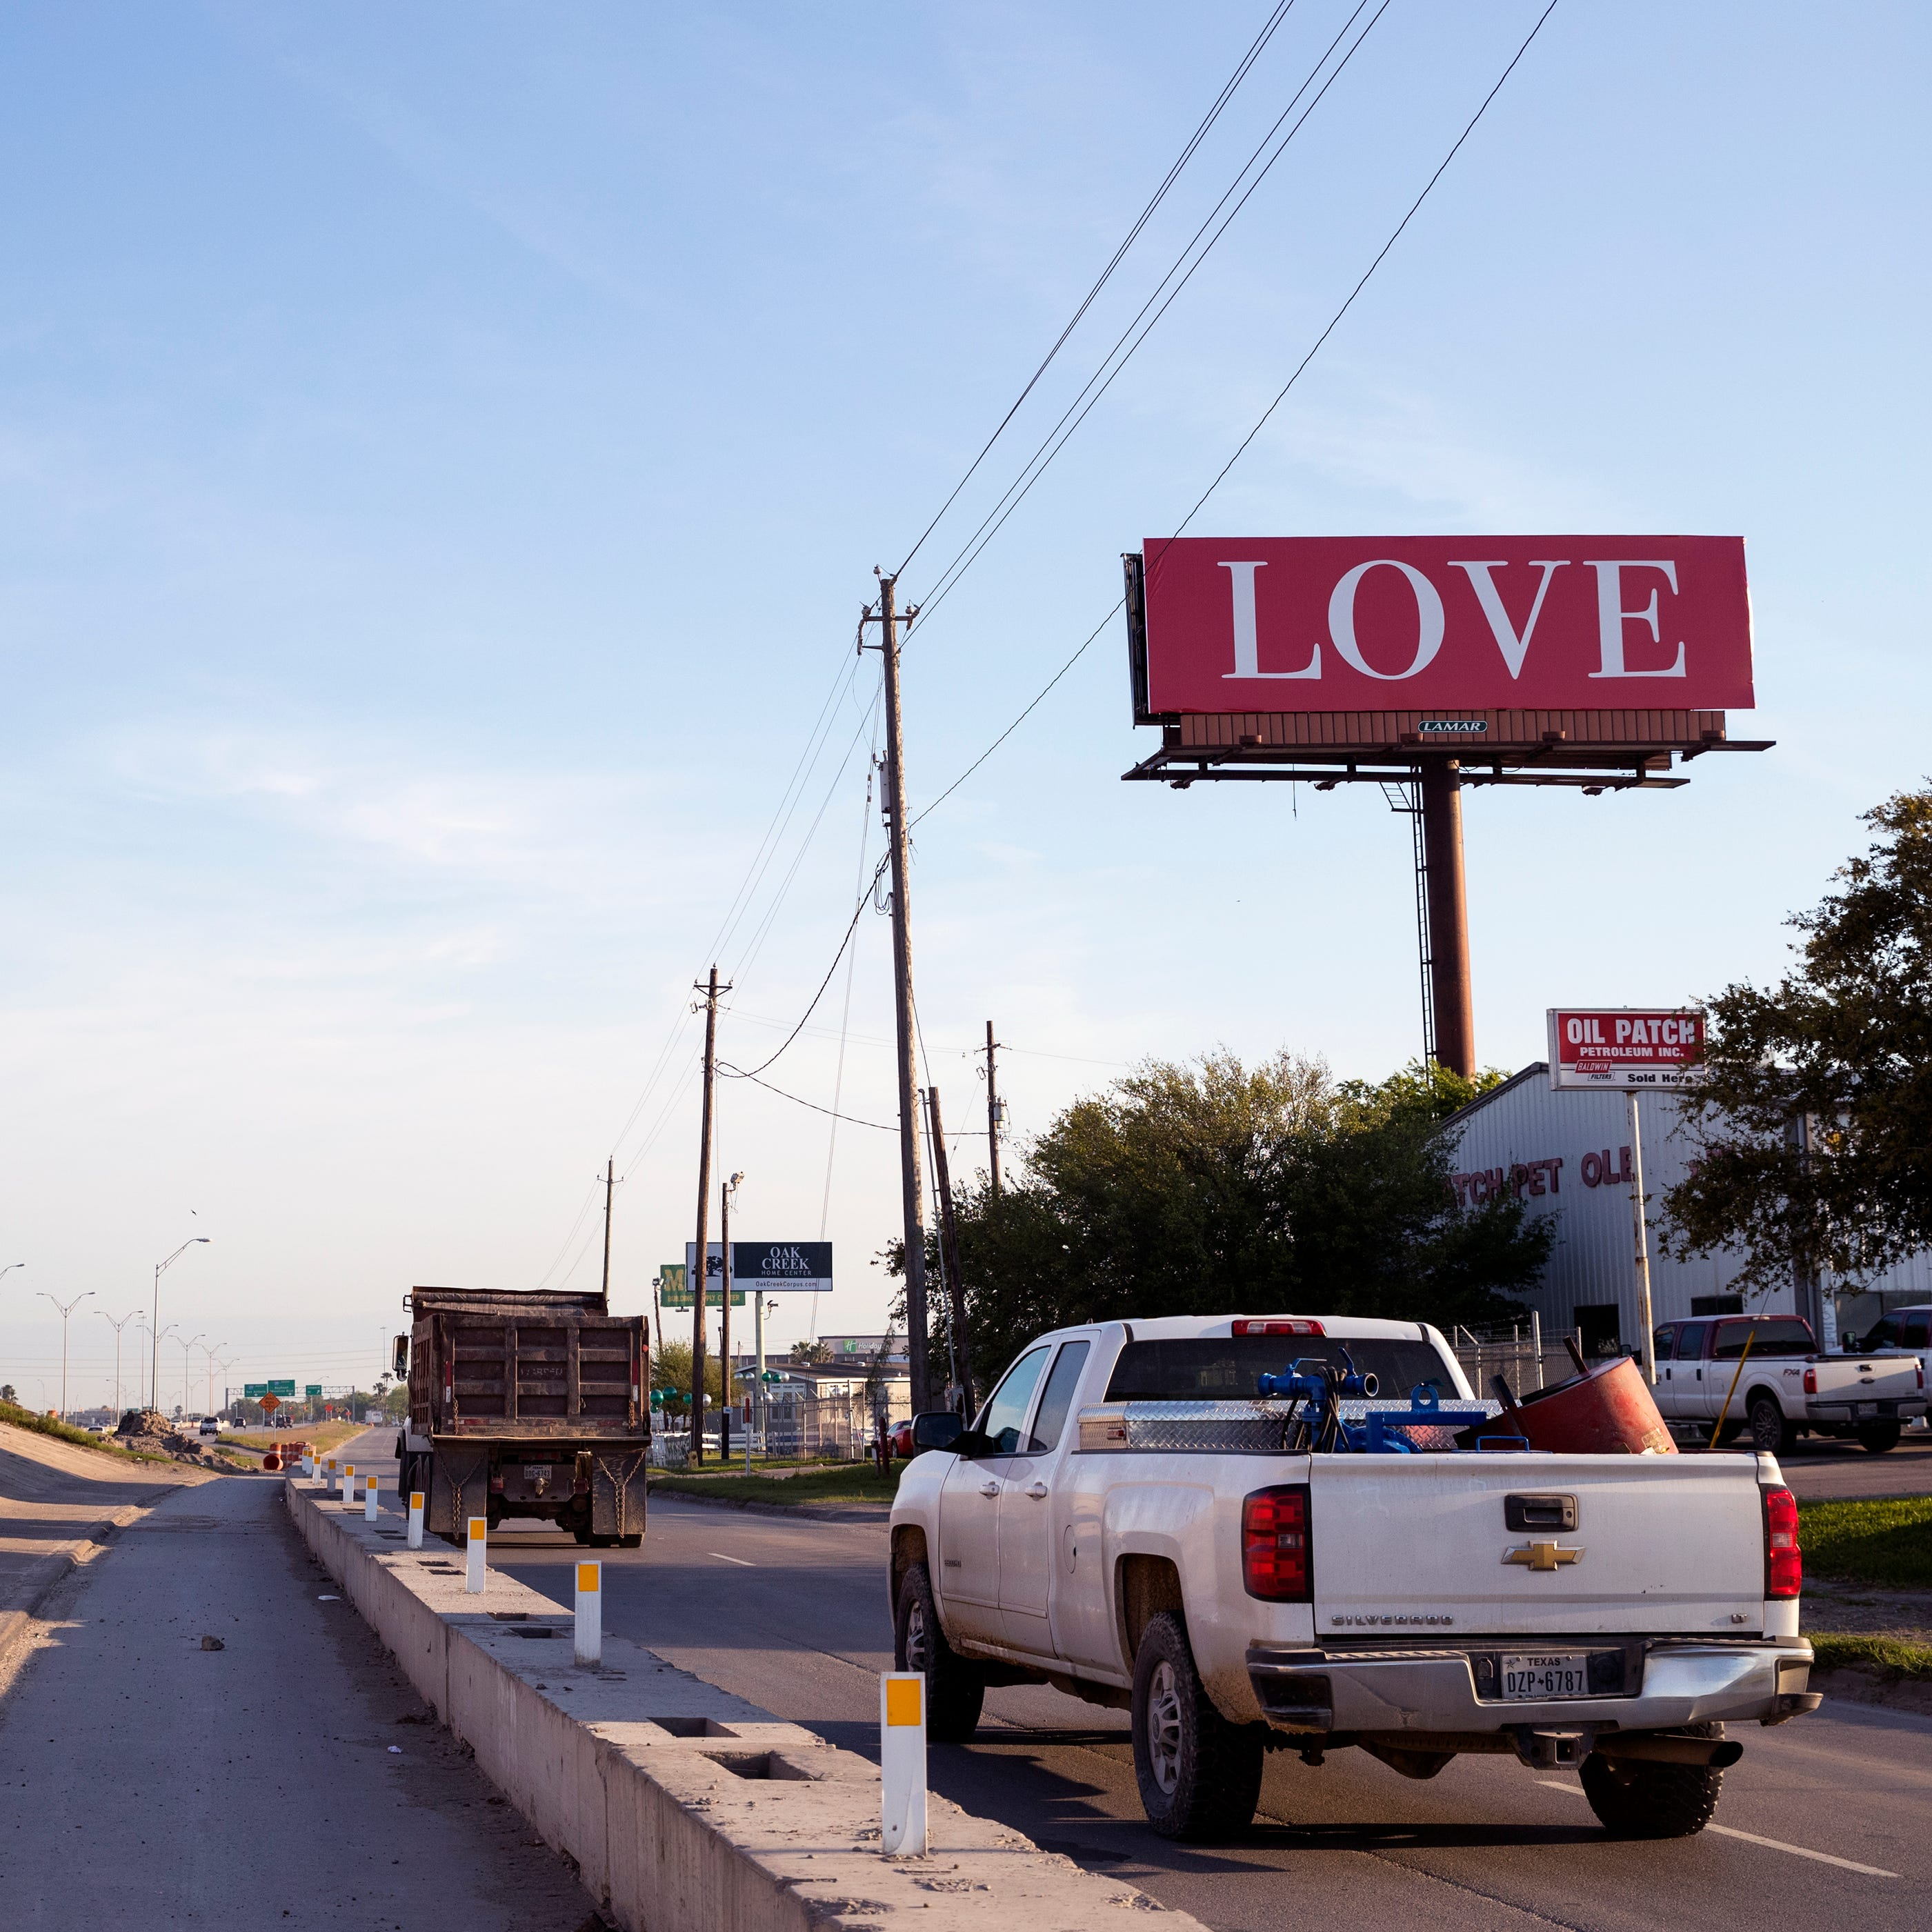 Have you seen this billboard? Texas gets first 'LOVE' billboard in Corpus Christi